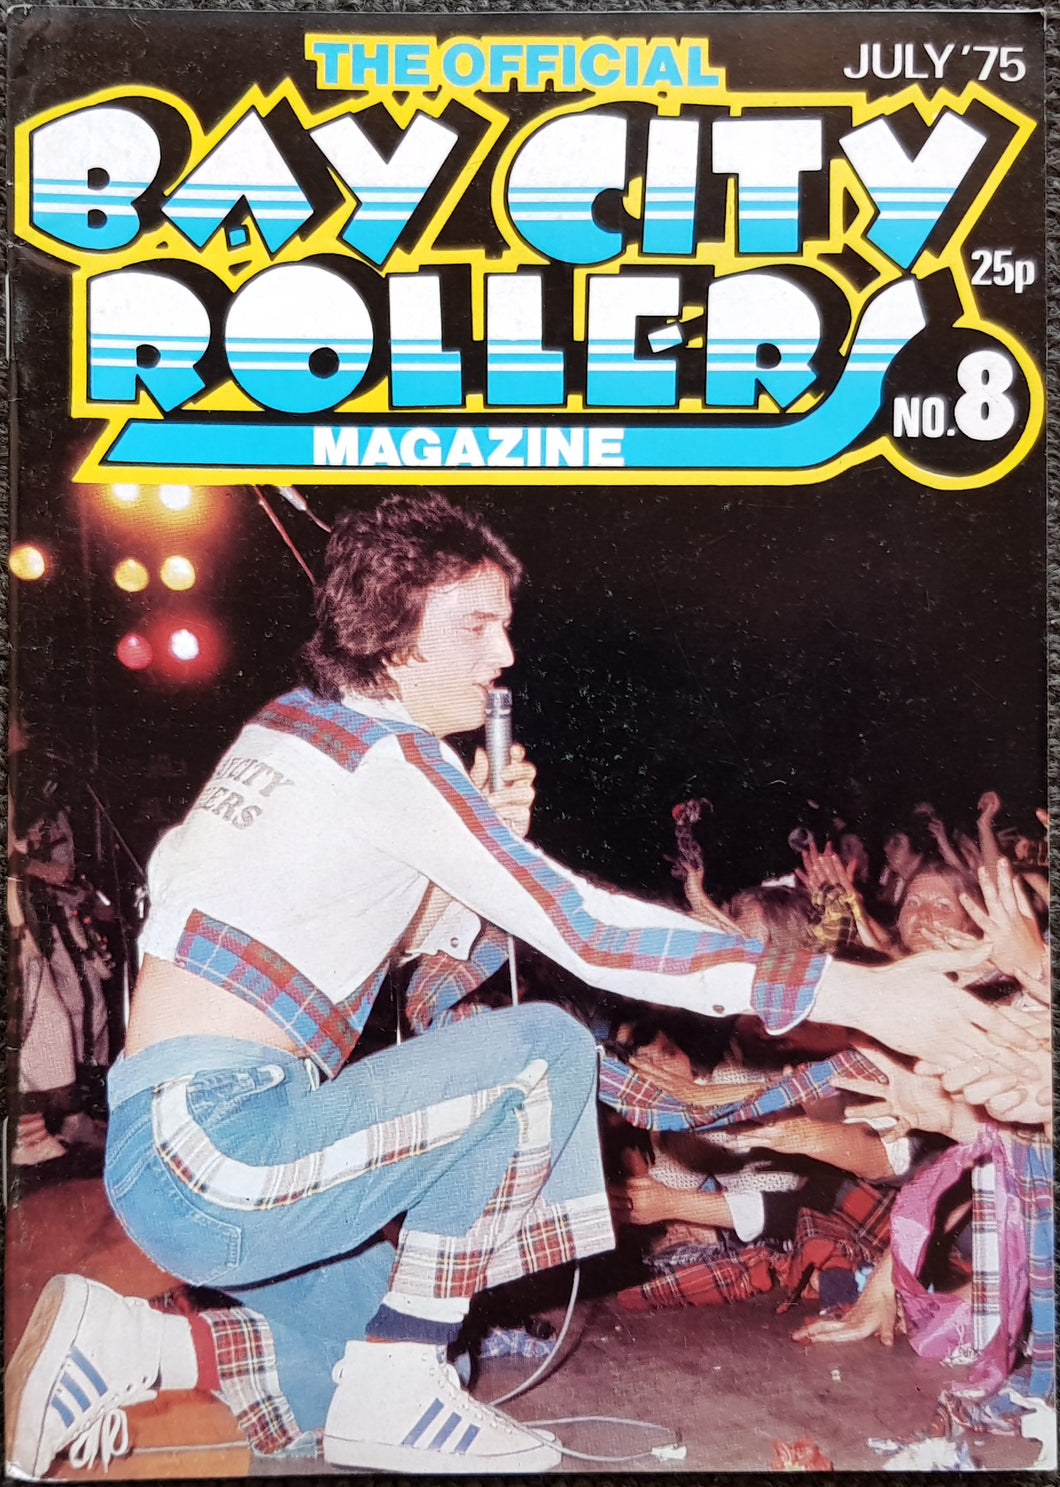 Bay City Rollers - The Official Bay City Rollers Magazine No.8